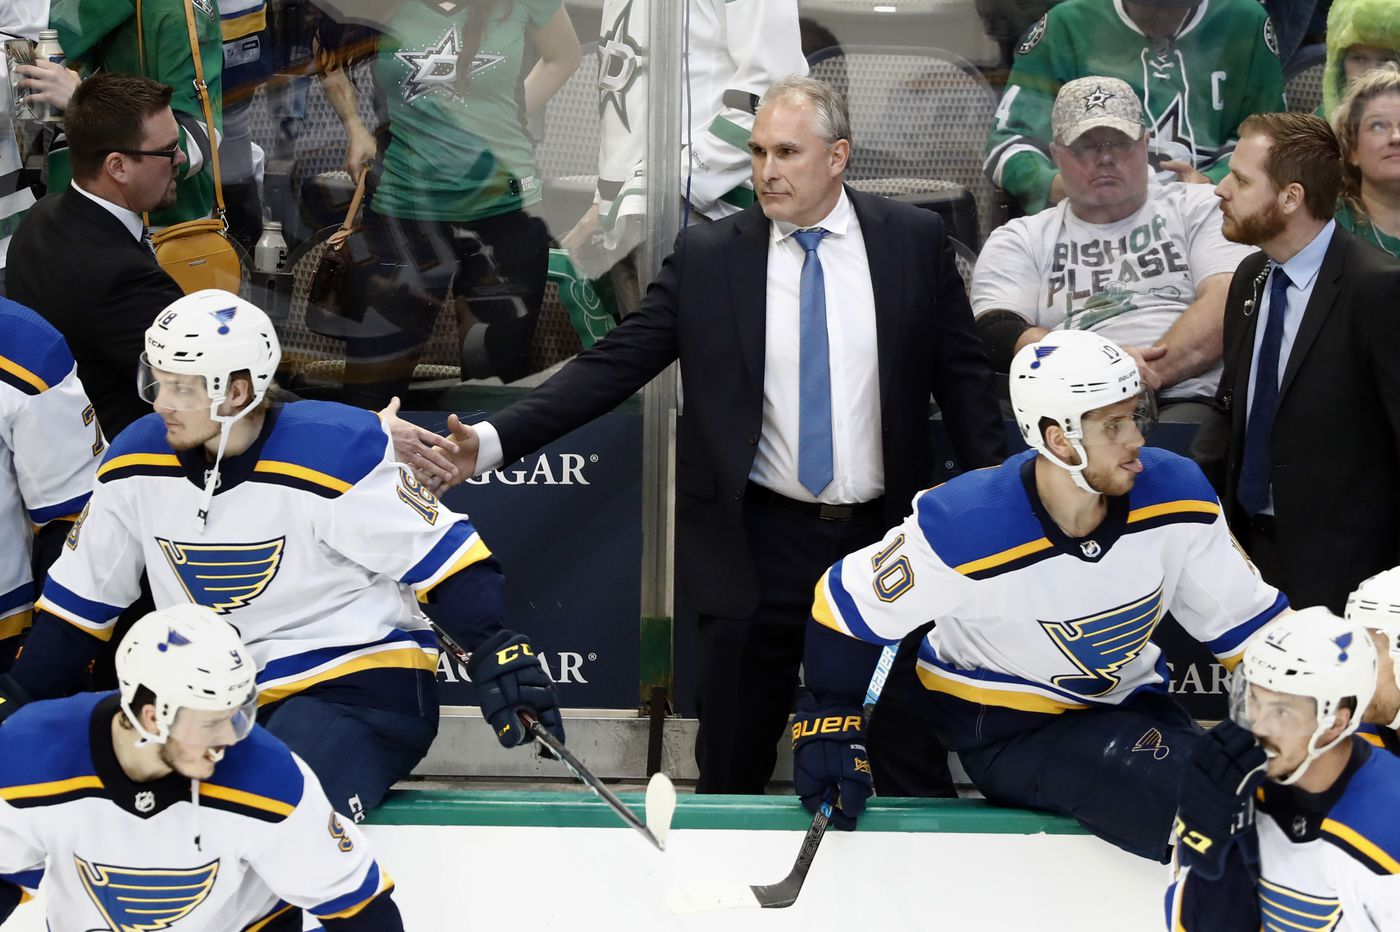 Former Flyers Craig Berube and Patrick Maroon find redemption with St. Louis Blues | Sam Carchidi